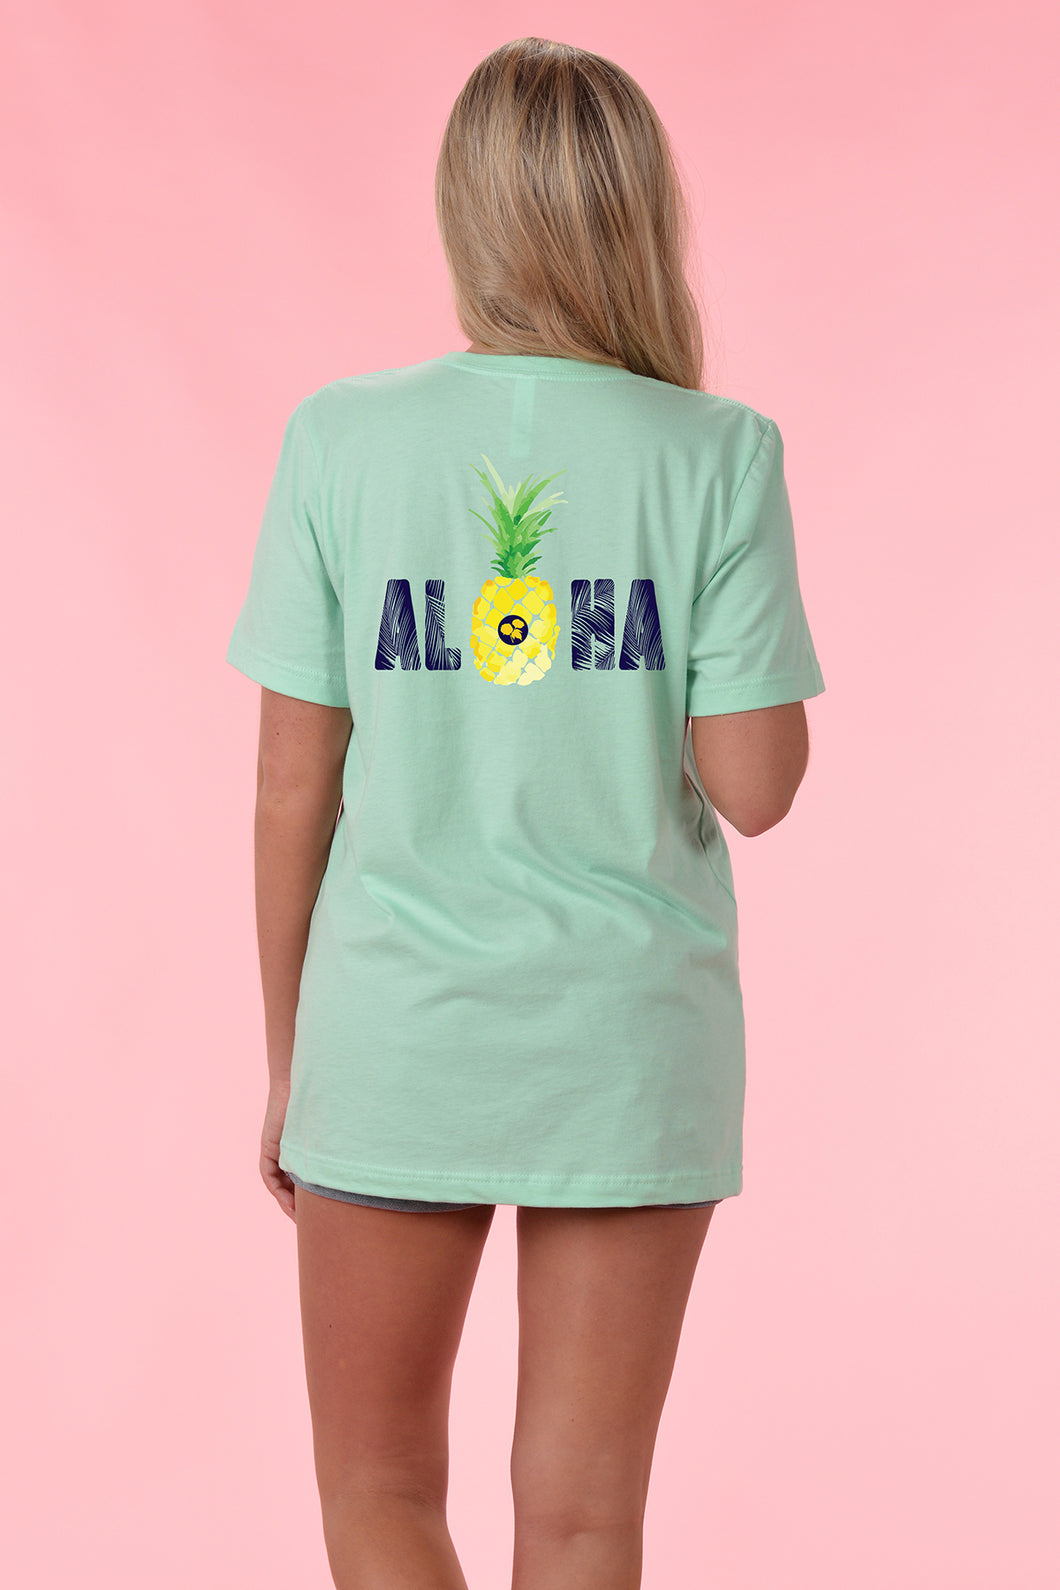 Aloha - Front and Back - Kelly Cottons